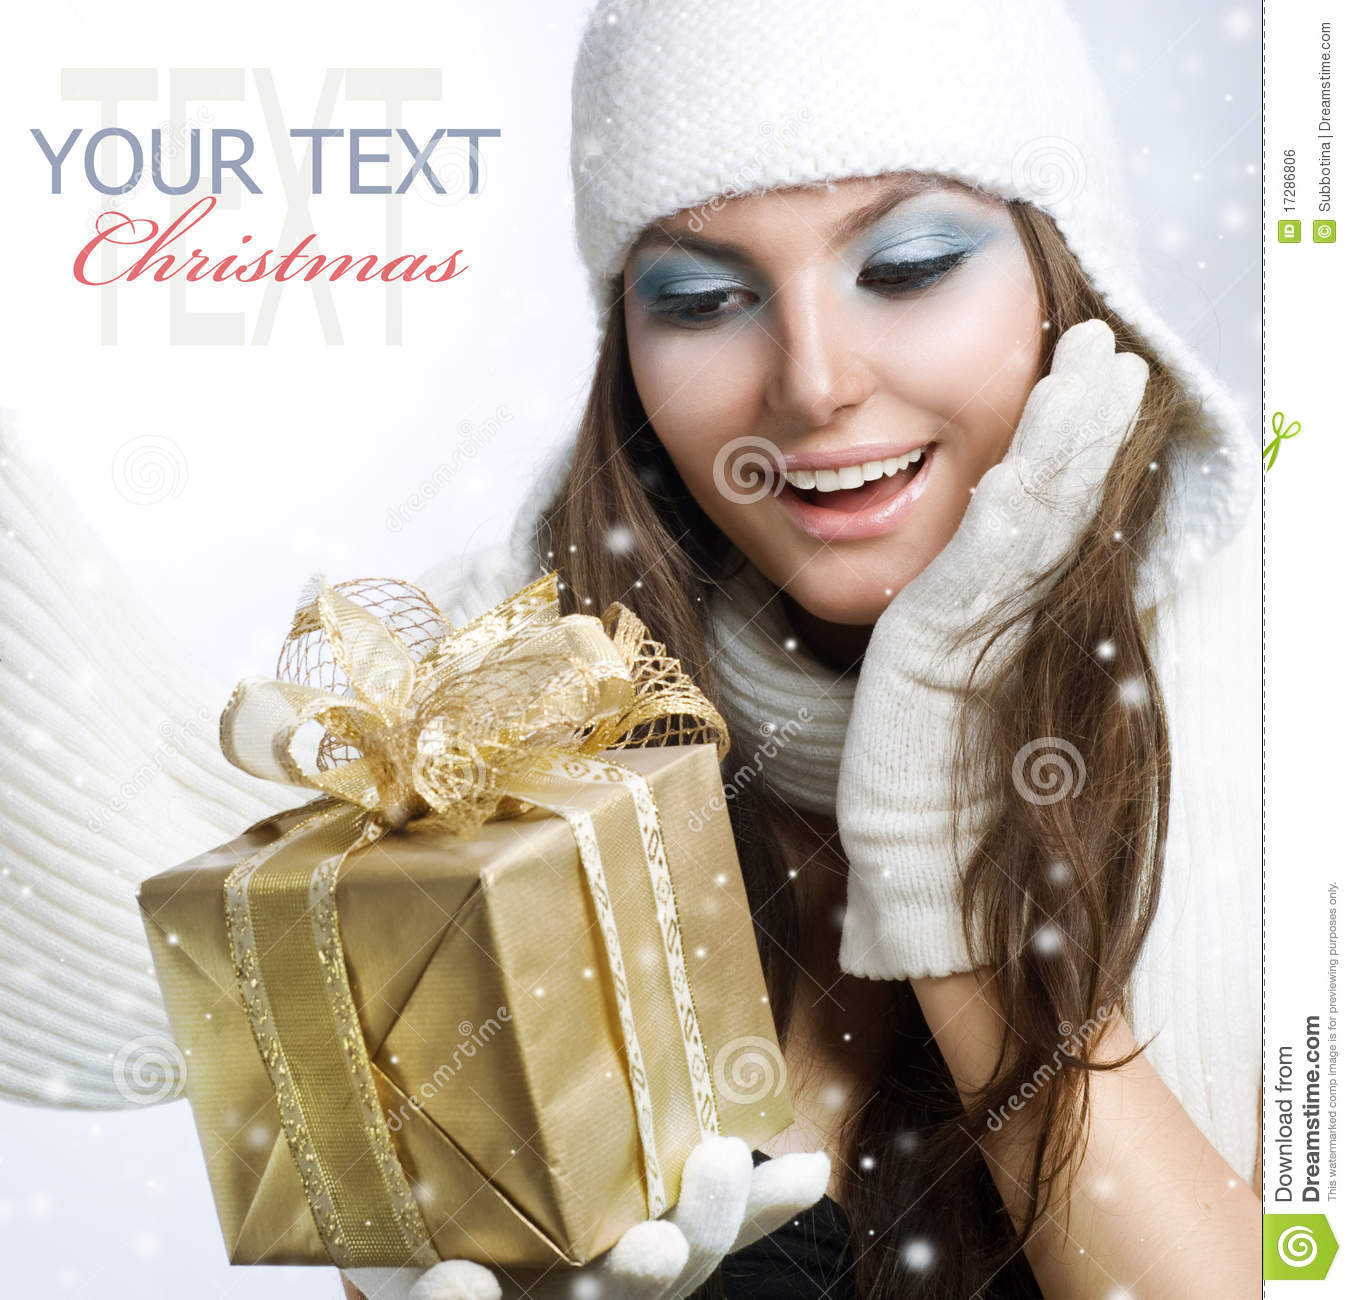 Download Girl with Gift stock photo. Image of girl, laughing, gold - 17286806